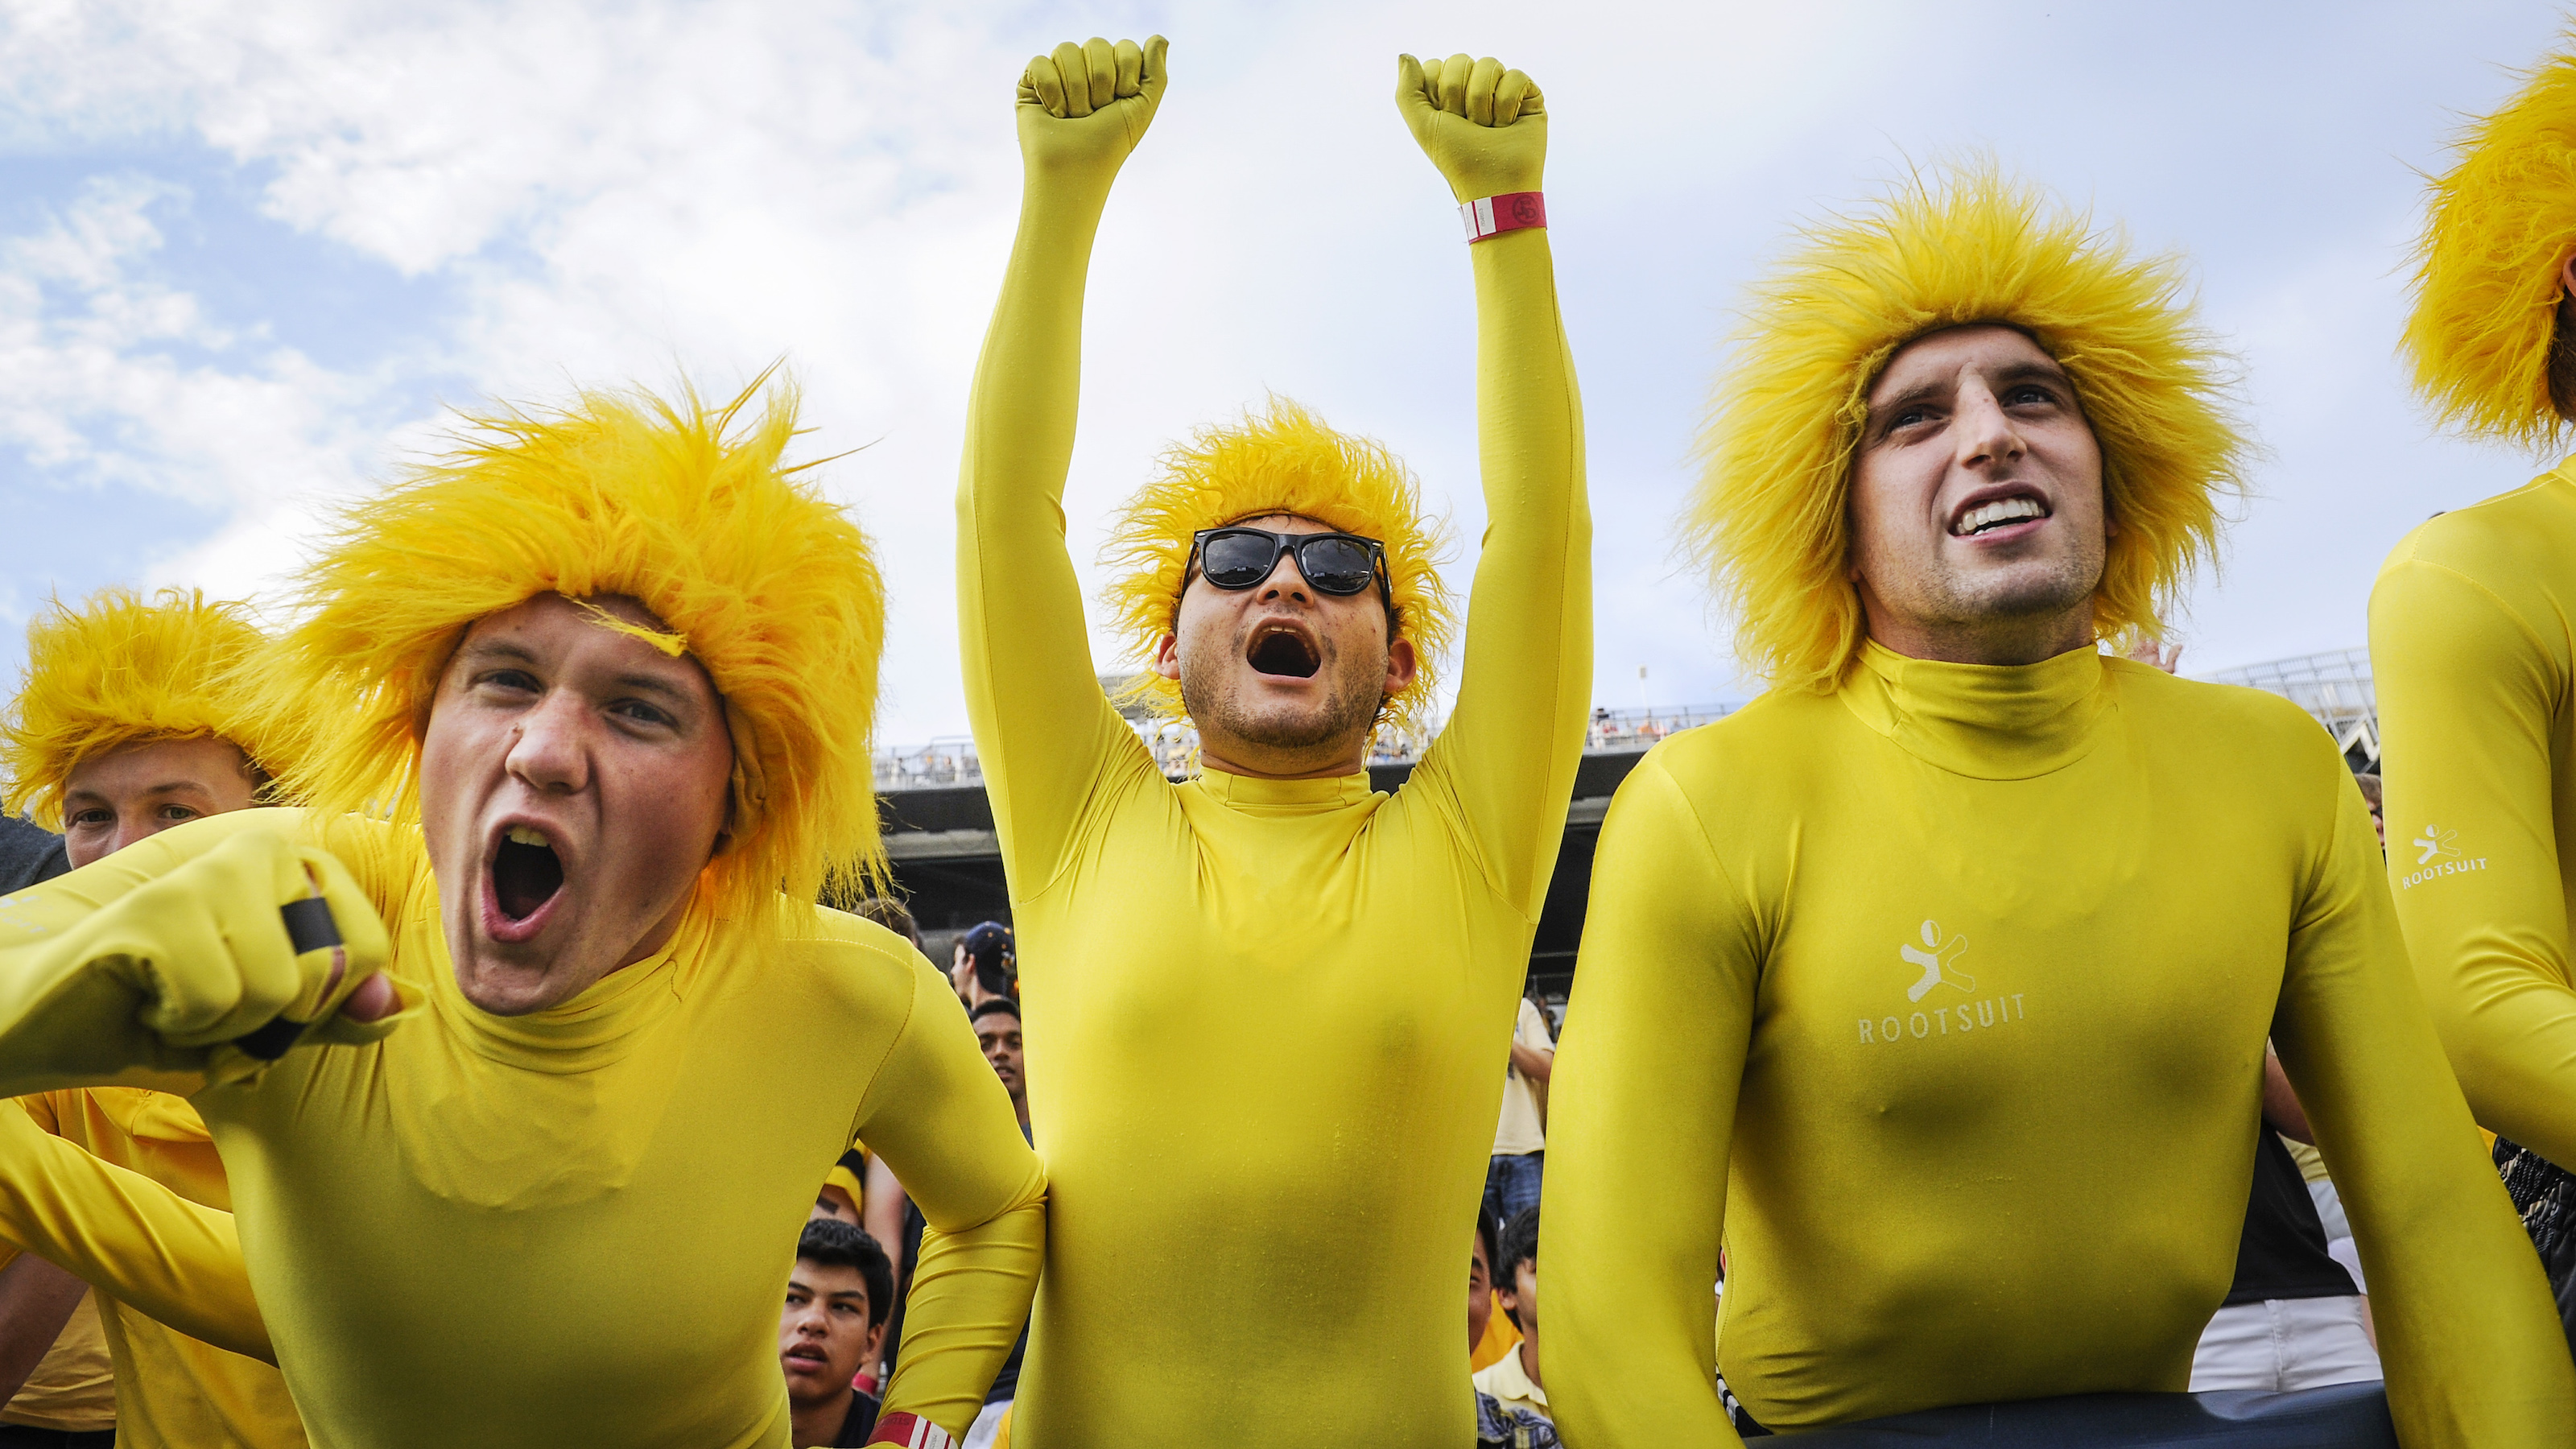 Georgia Tech students Joe Sobchuk, left, David Gaitan, and Matt Schwartz, right, cheer as their team comes on the field before the start of an NCAA college football game against Alcorn State, Thursday, Sept. 3, 2015, in Atlanta. (AP Photo/John Amis)